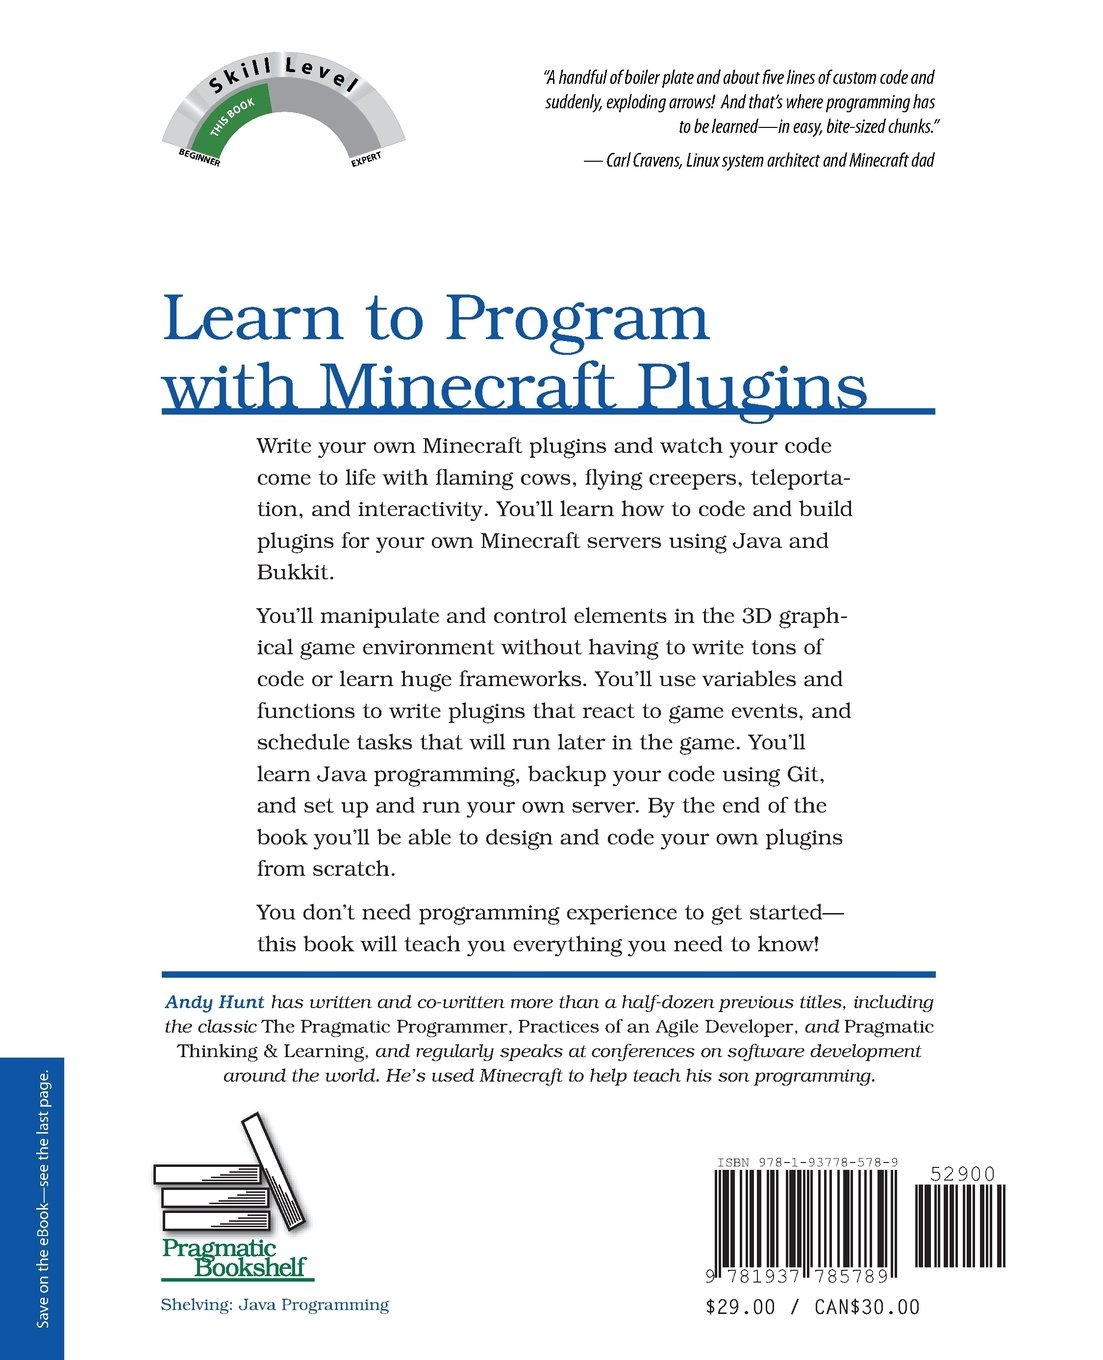 Learn To Program With Minecraft Plugins Create Flying Creepers And Flaming Cows In Java The Pragmatic Programmers Andy Hunt 9781937785789 Amazon